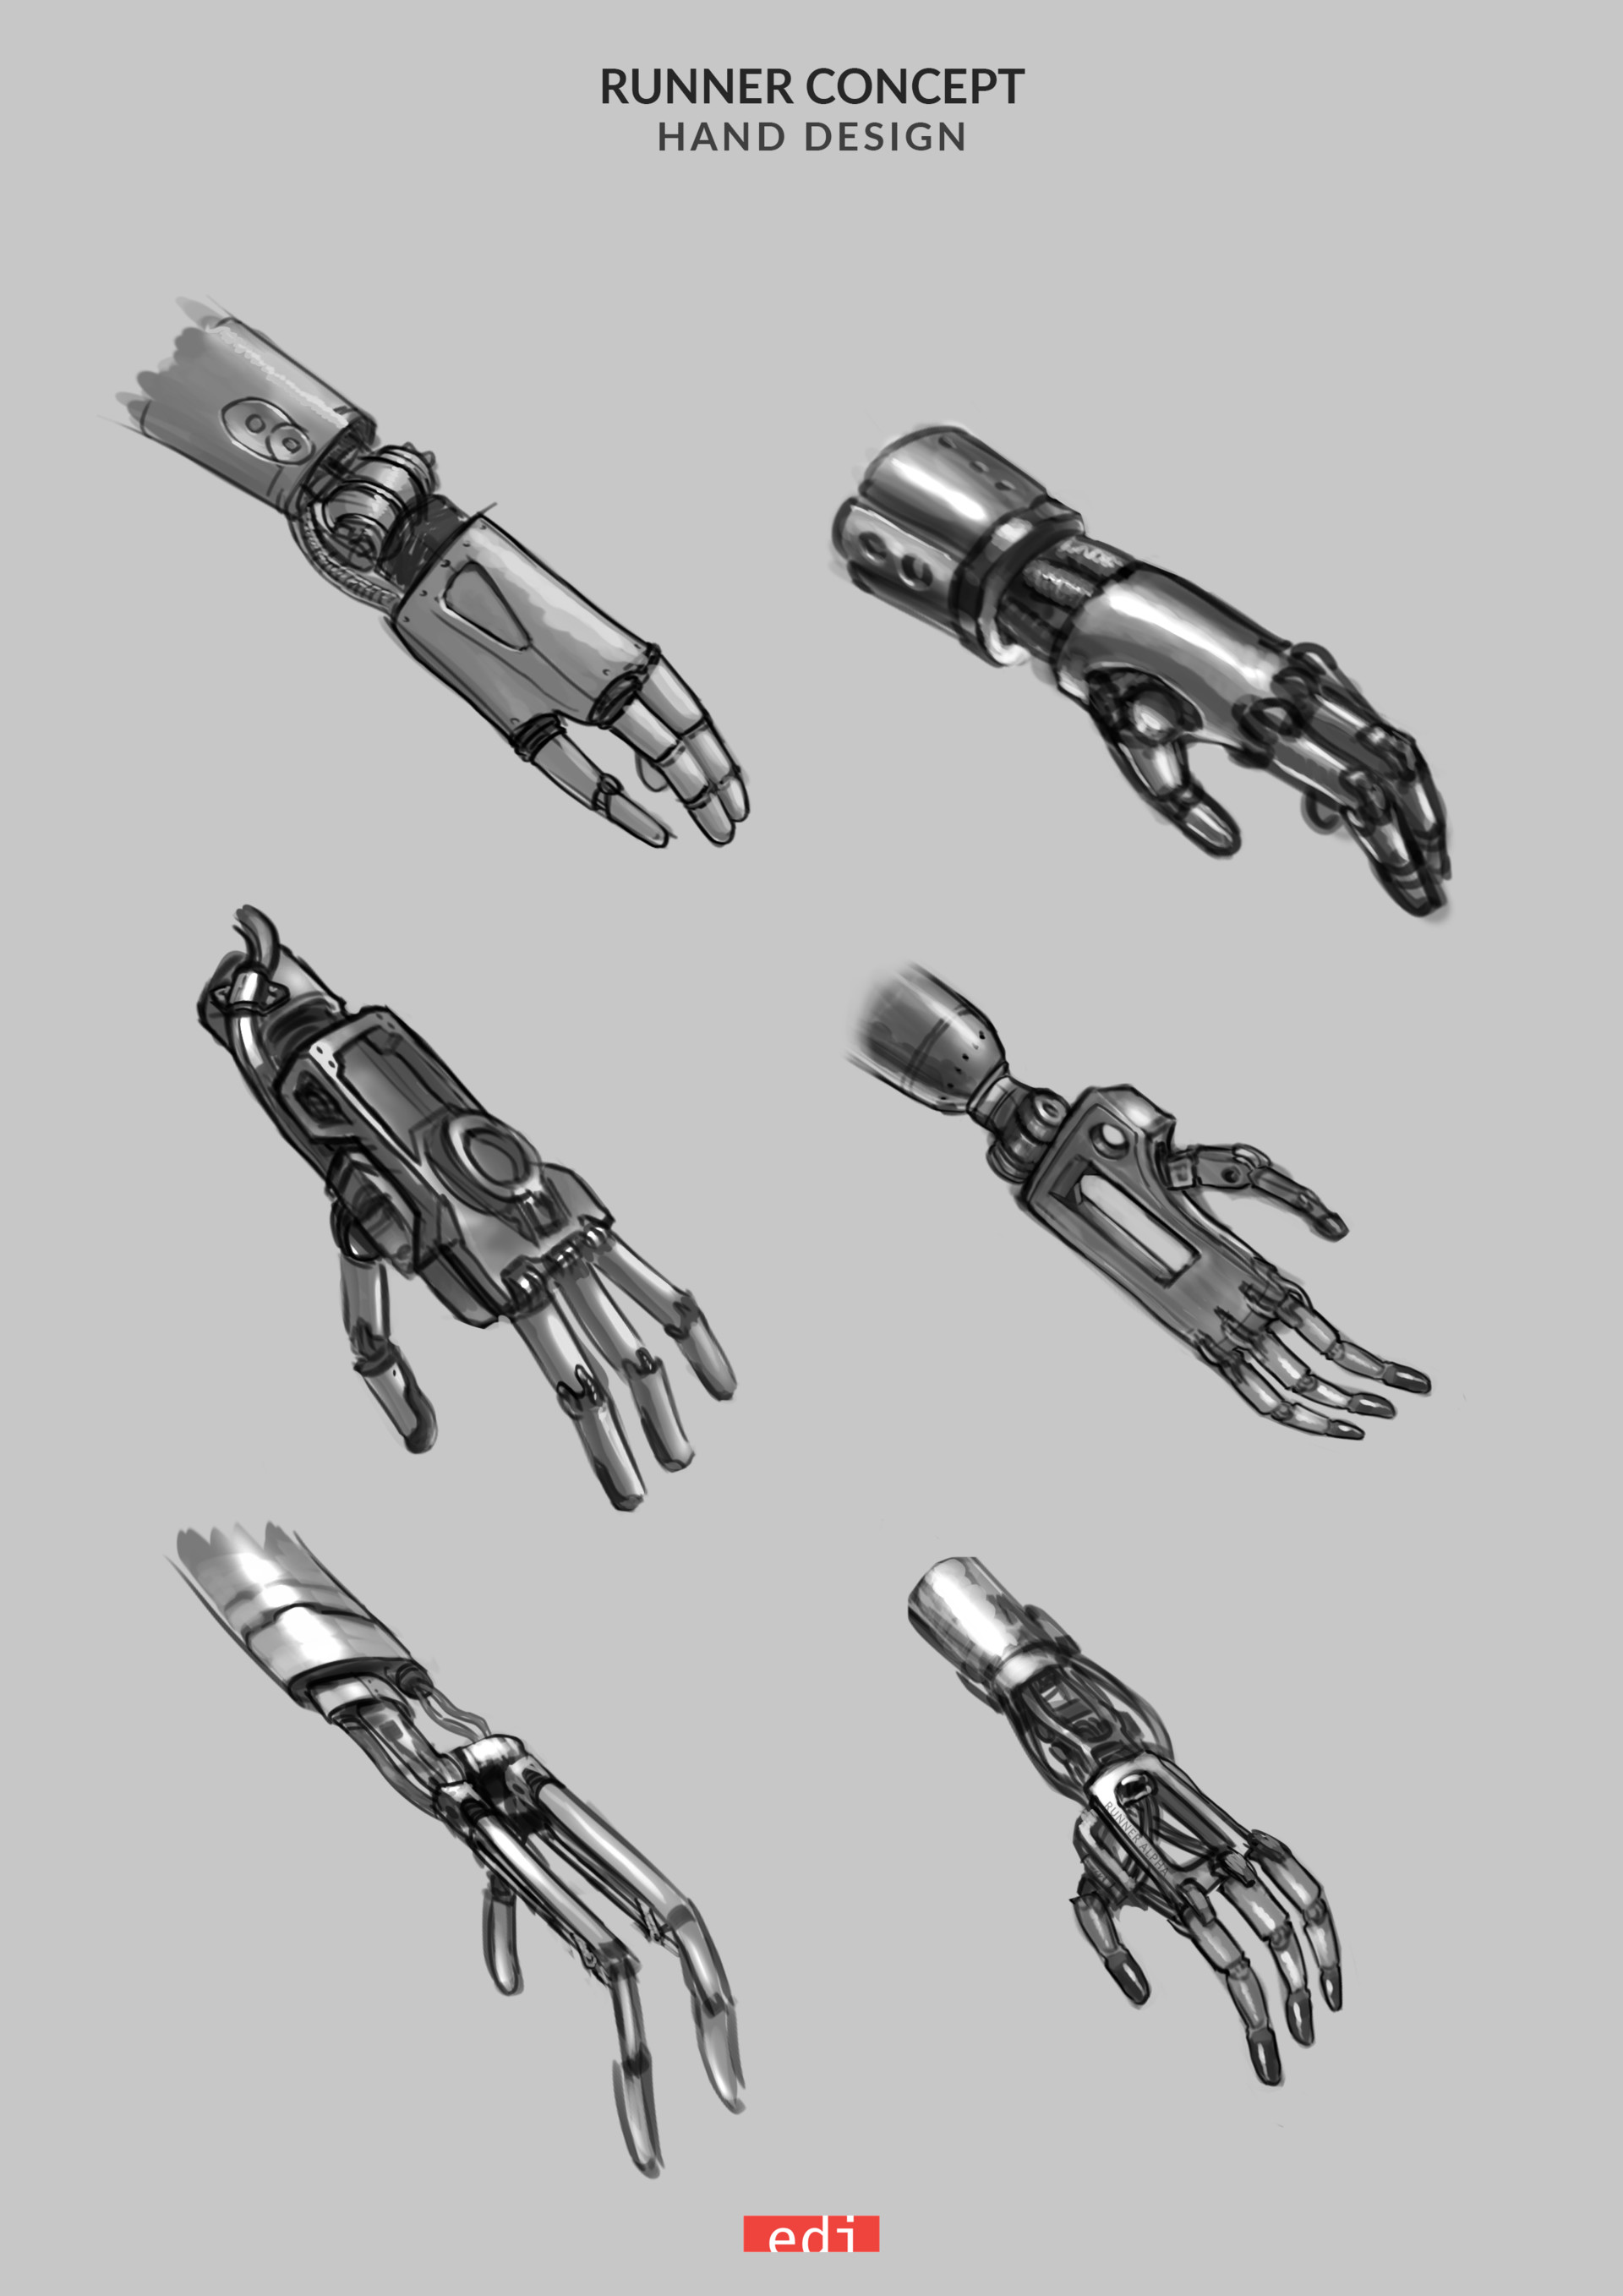 The hand needed to be a lightweight, purely functional element.